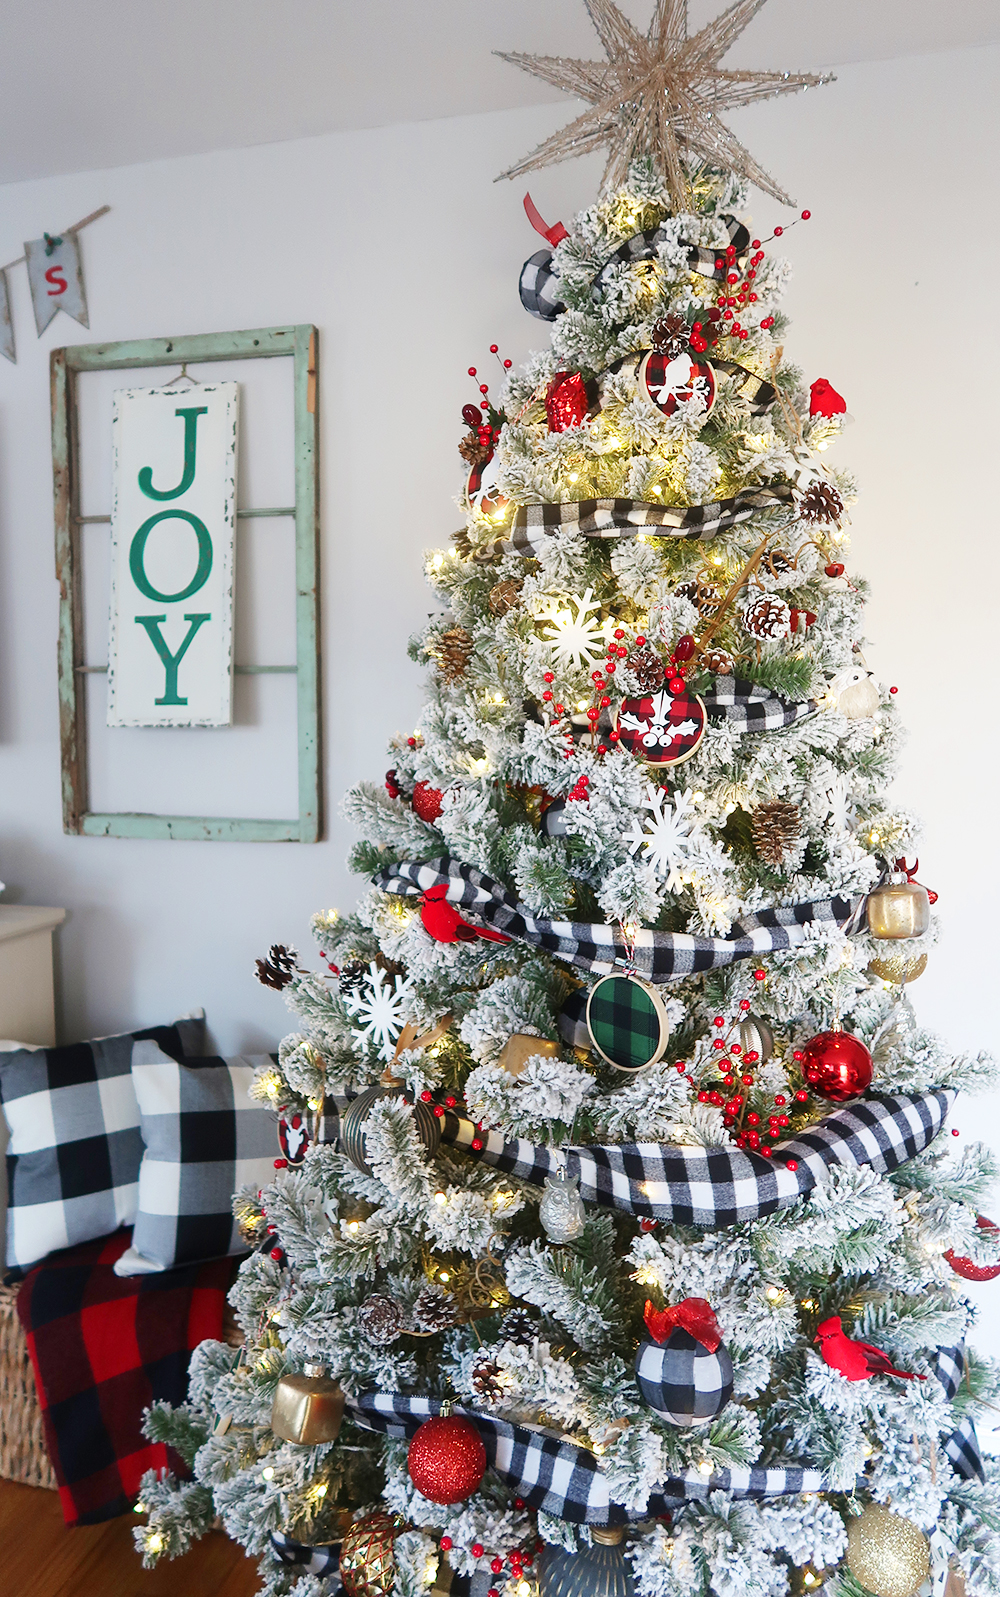 Learn to decorate your Christmas tree like a pro this holiday season with these easy and amazing tree decorating ideas and step by step tutorials! | glitterinc.com | @glitterinc // Flocked Buffalo Check Christmas Tree